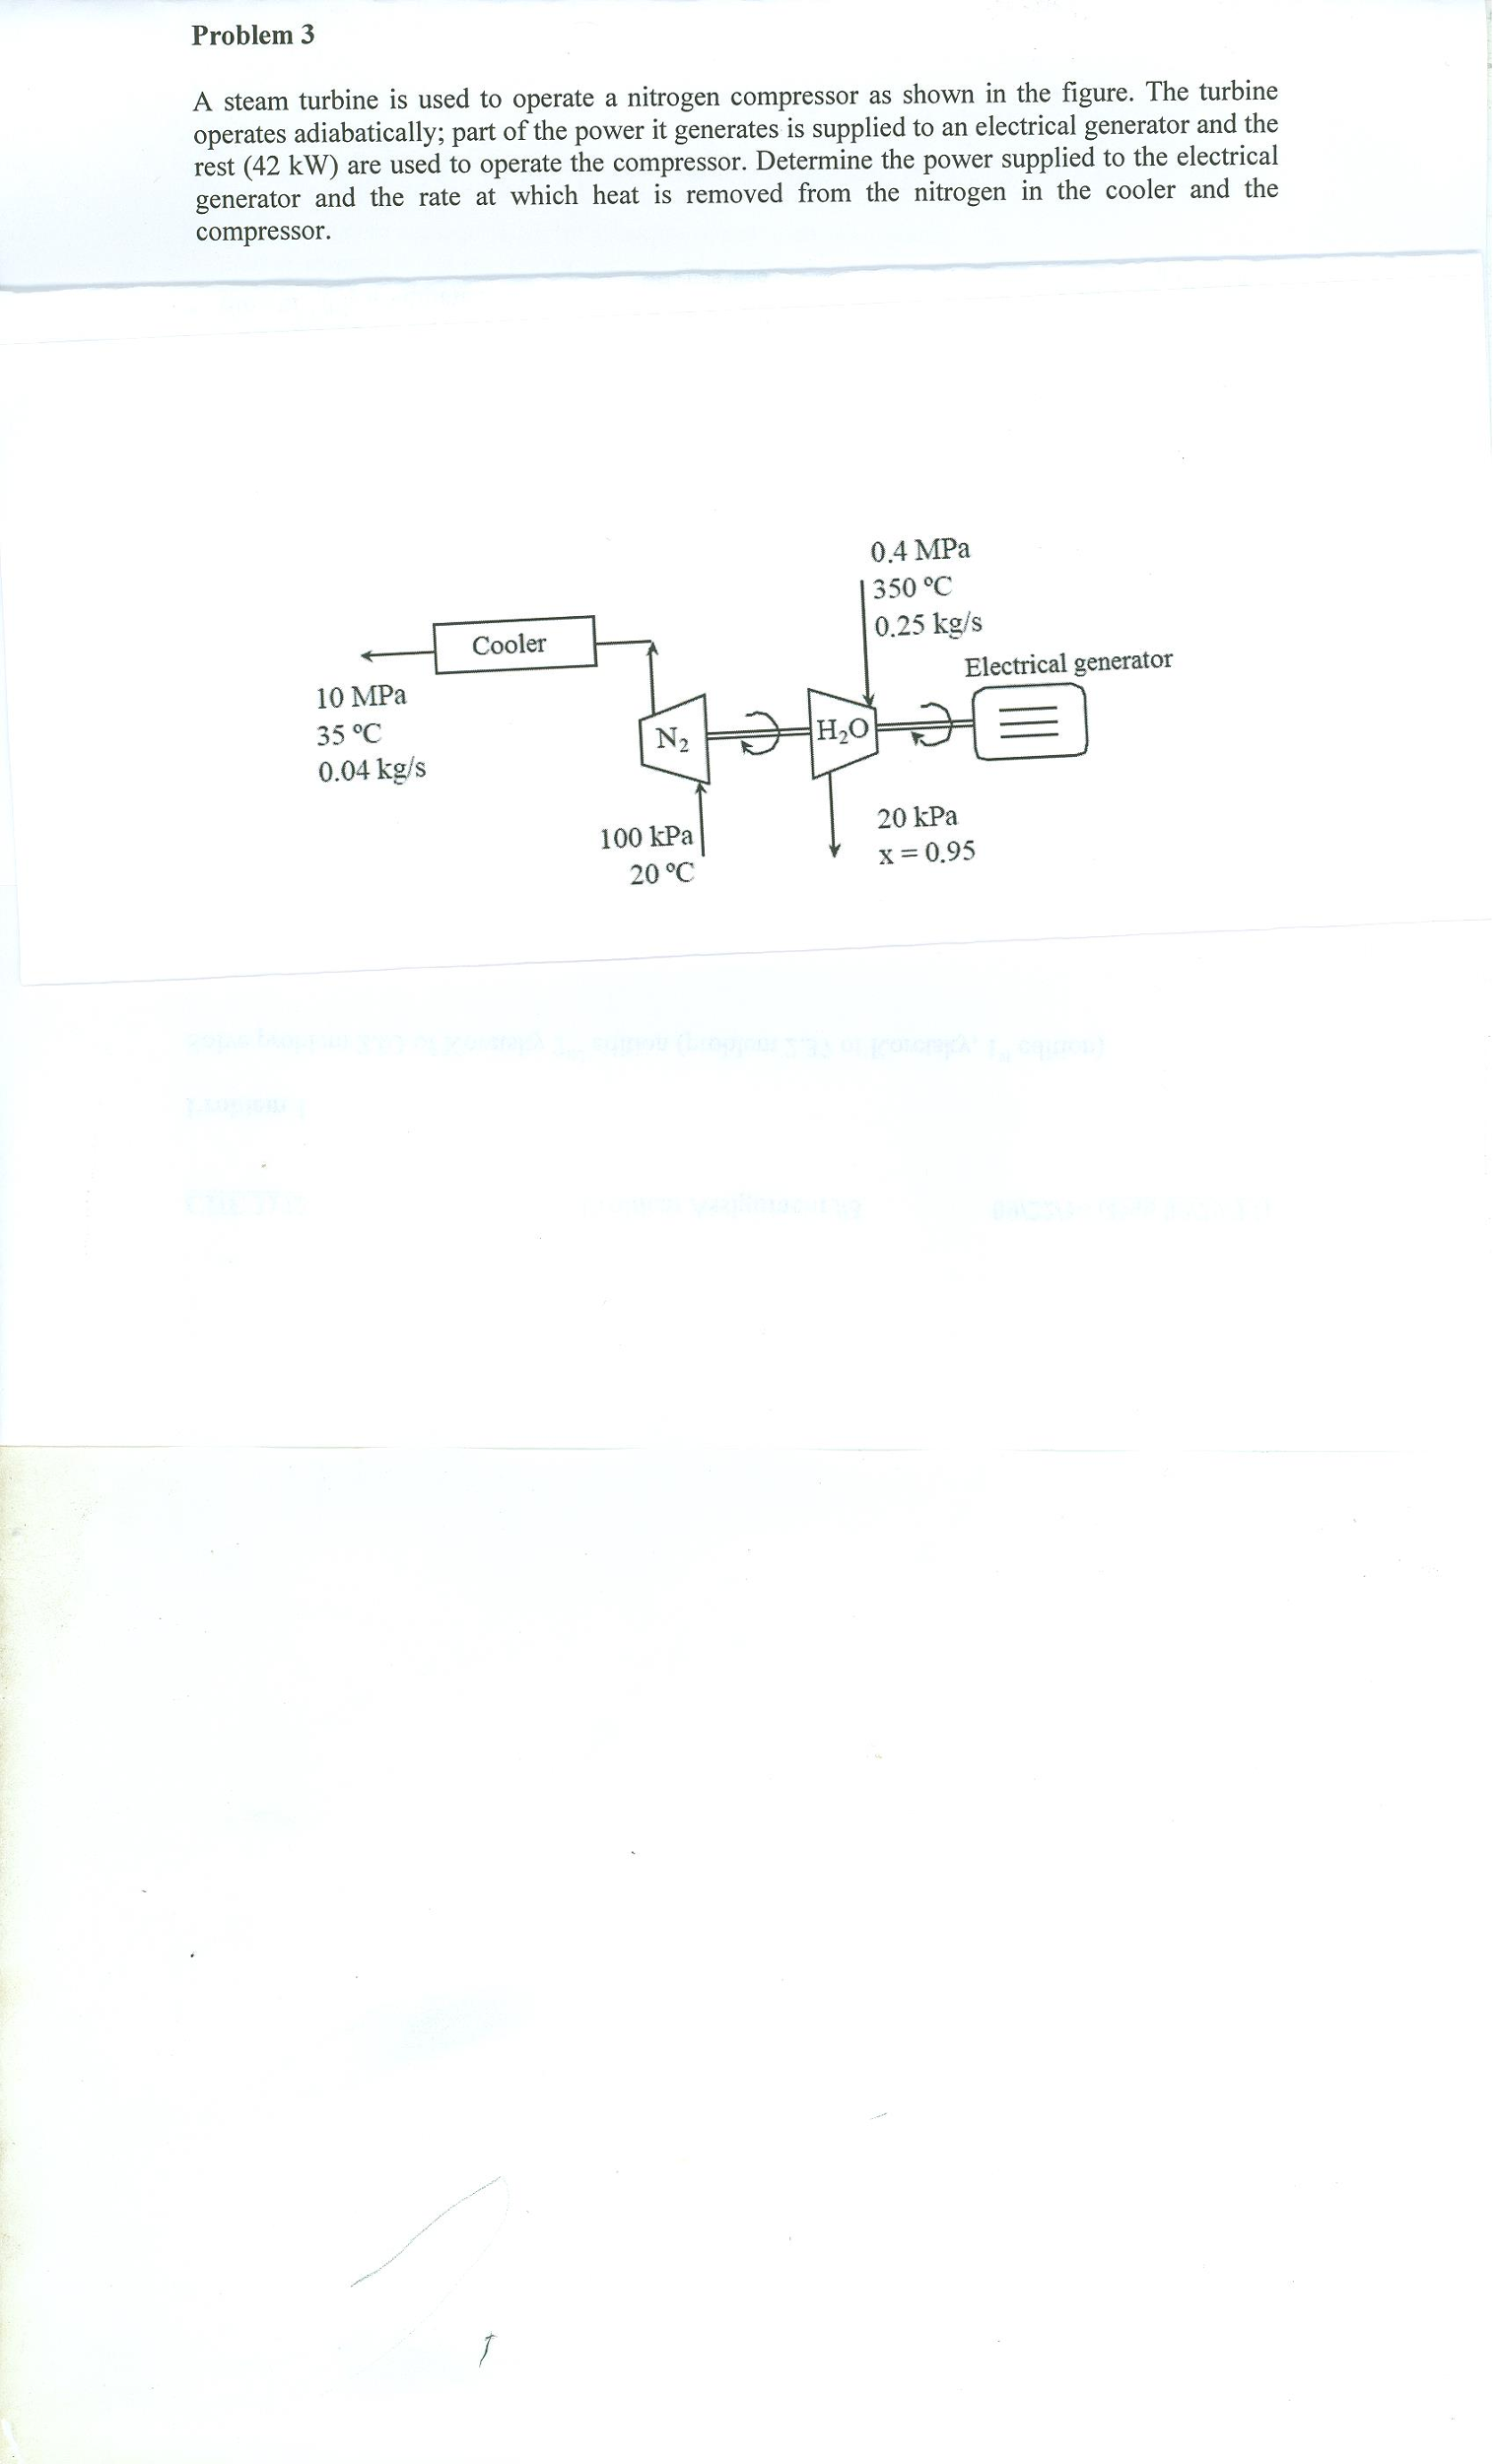 Problem 3 A Steam Turbine Is Used To Operate A Nit